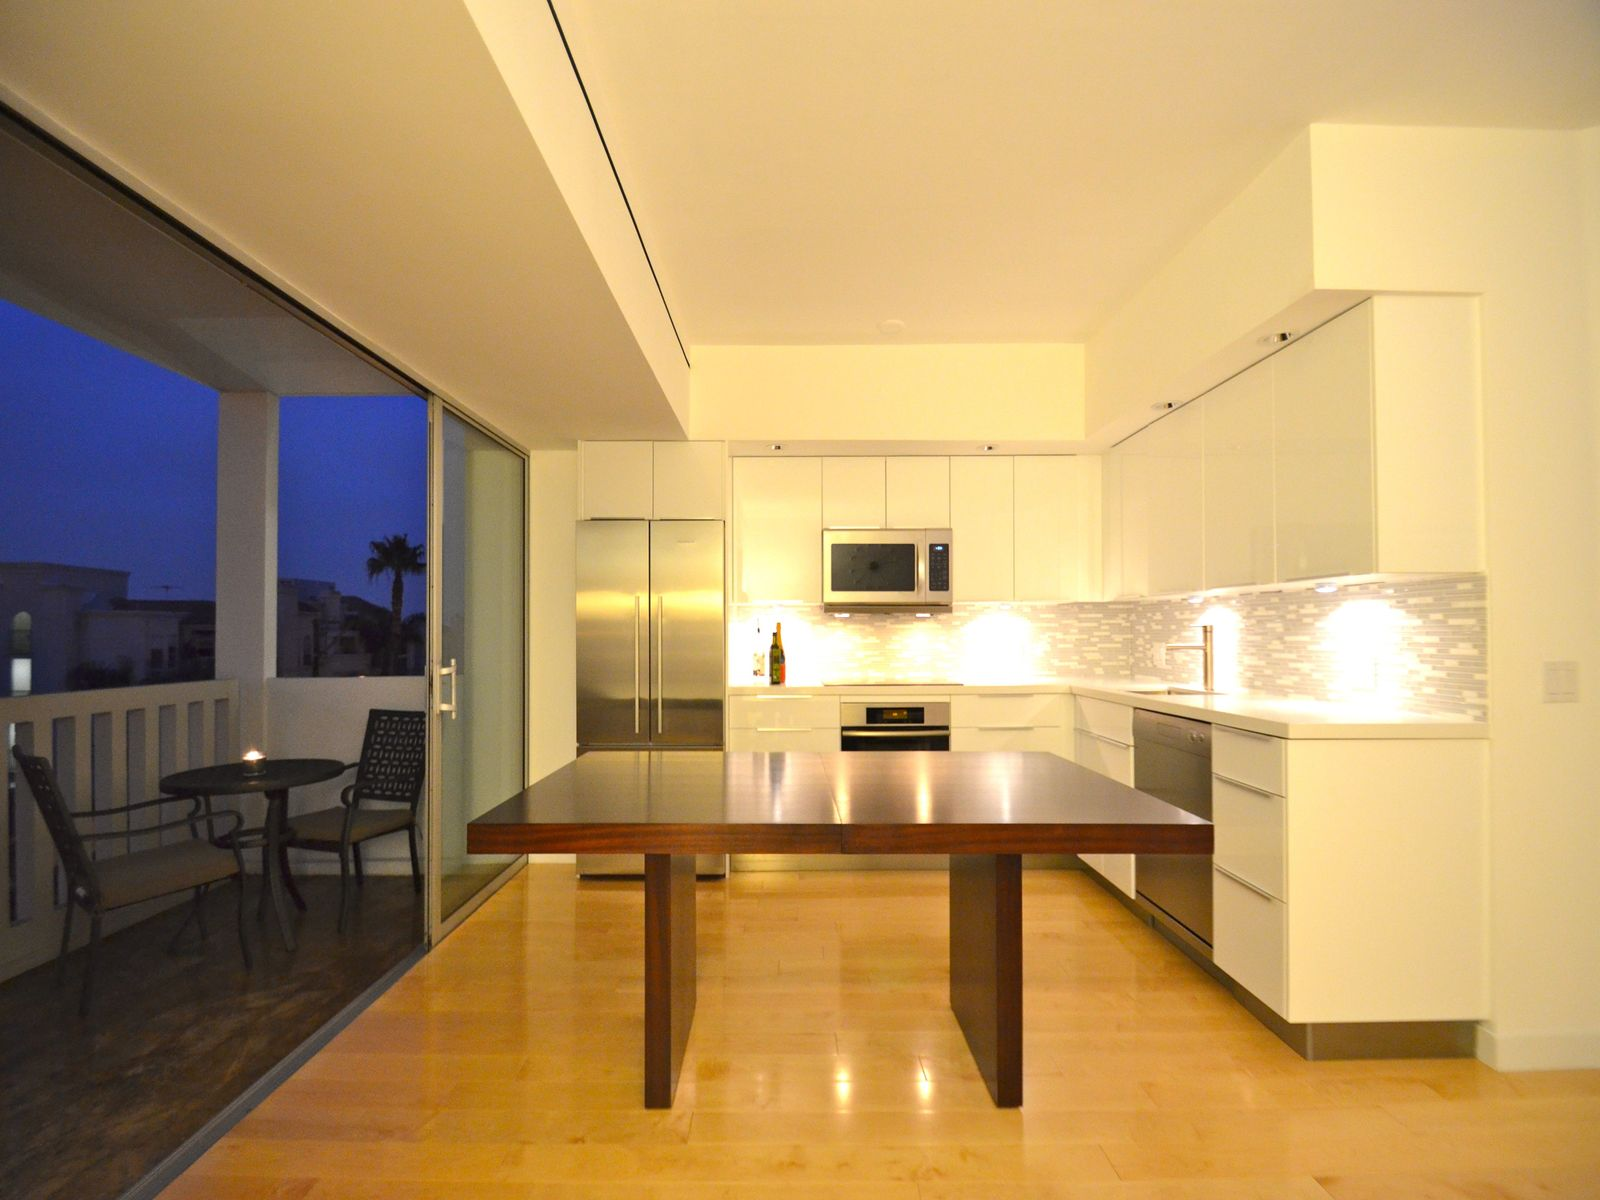 Sleek & Modern 1-Bedroom Condo